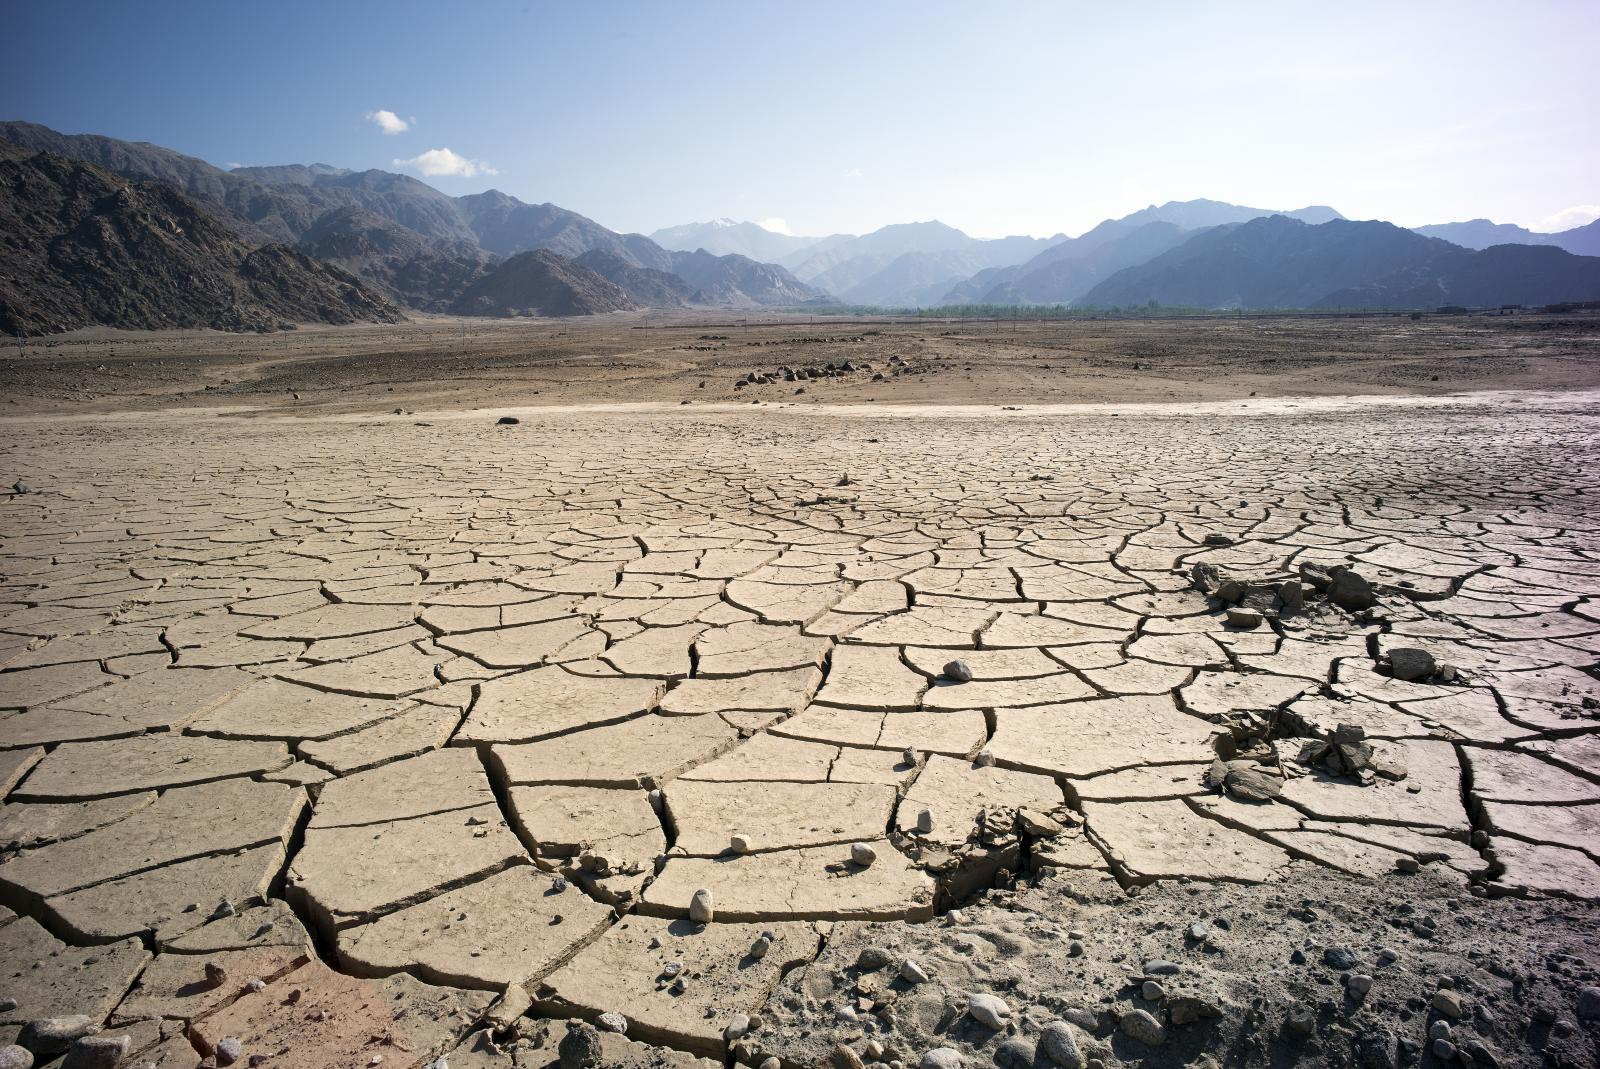 A stretch of land in ladakh, india with cracks on the surface to show dehydration